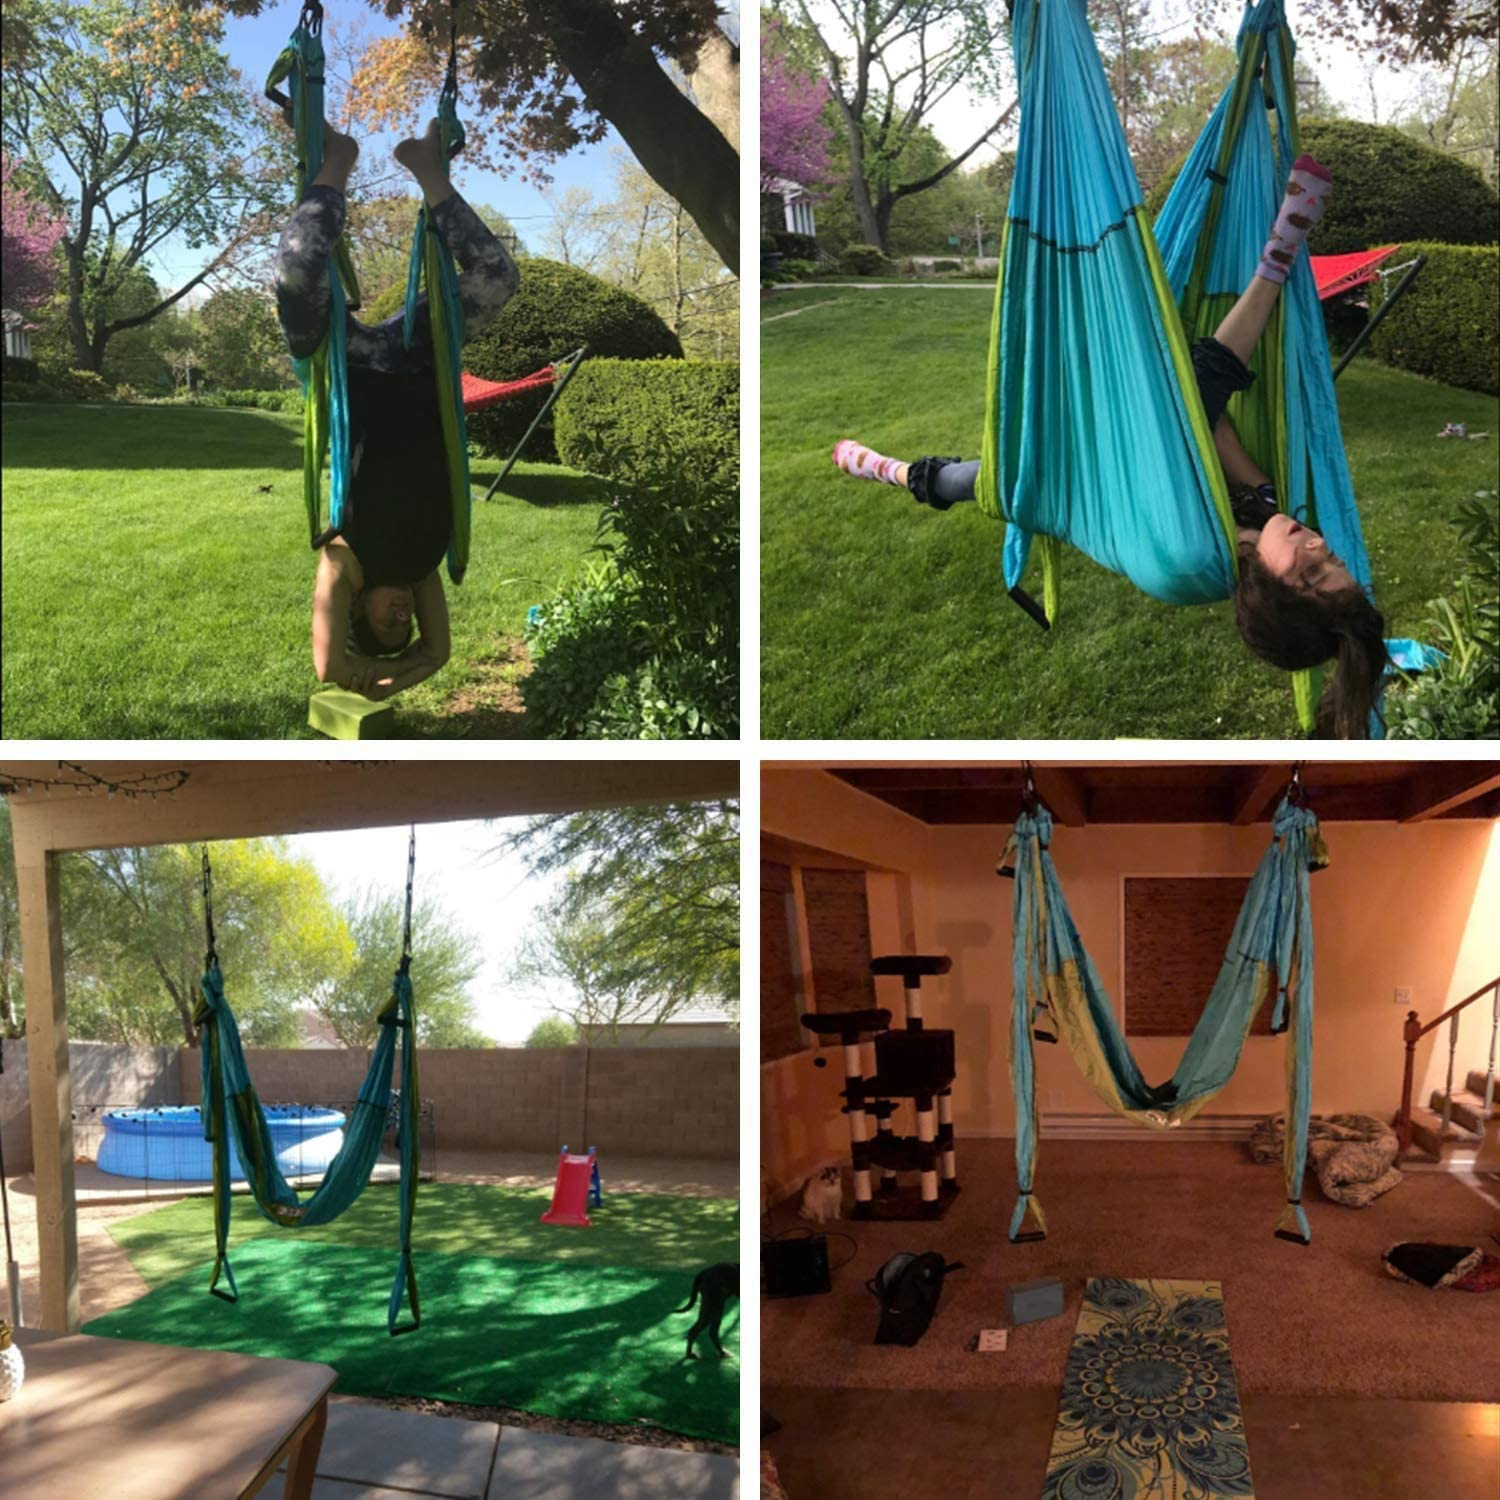 Yaesport Aerial Yoga Swing Set 2 Stainless Steel Ceiling Hooks and 8 Screws 2 Extensions Straps Ultra Strong Antigravity Yoga Hammock//Sling//Trapeze for Air Yoga Inversion Exercises